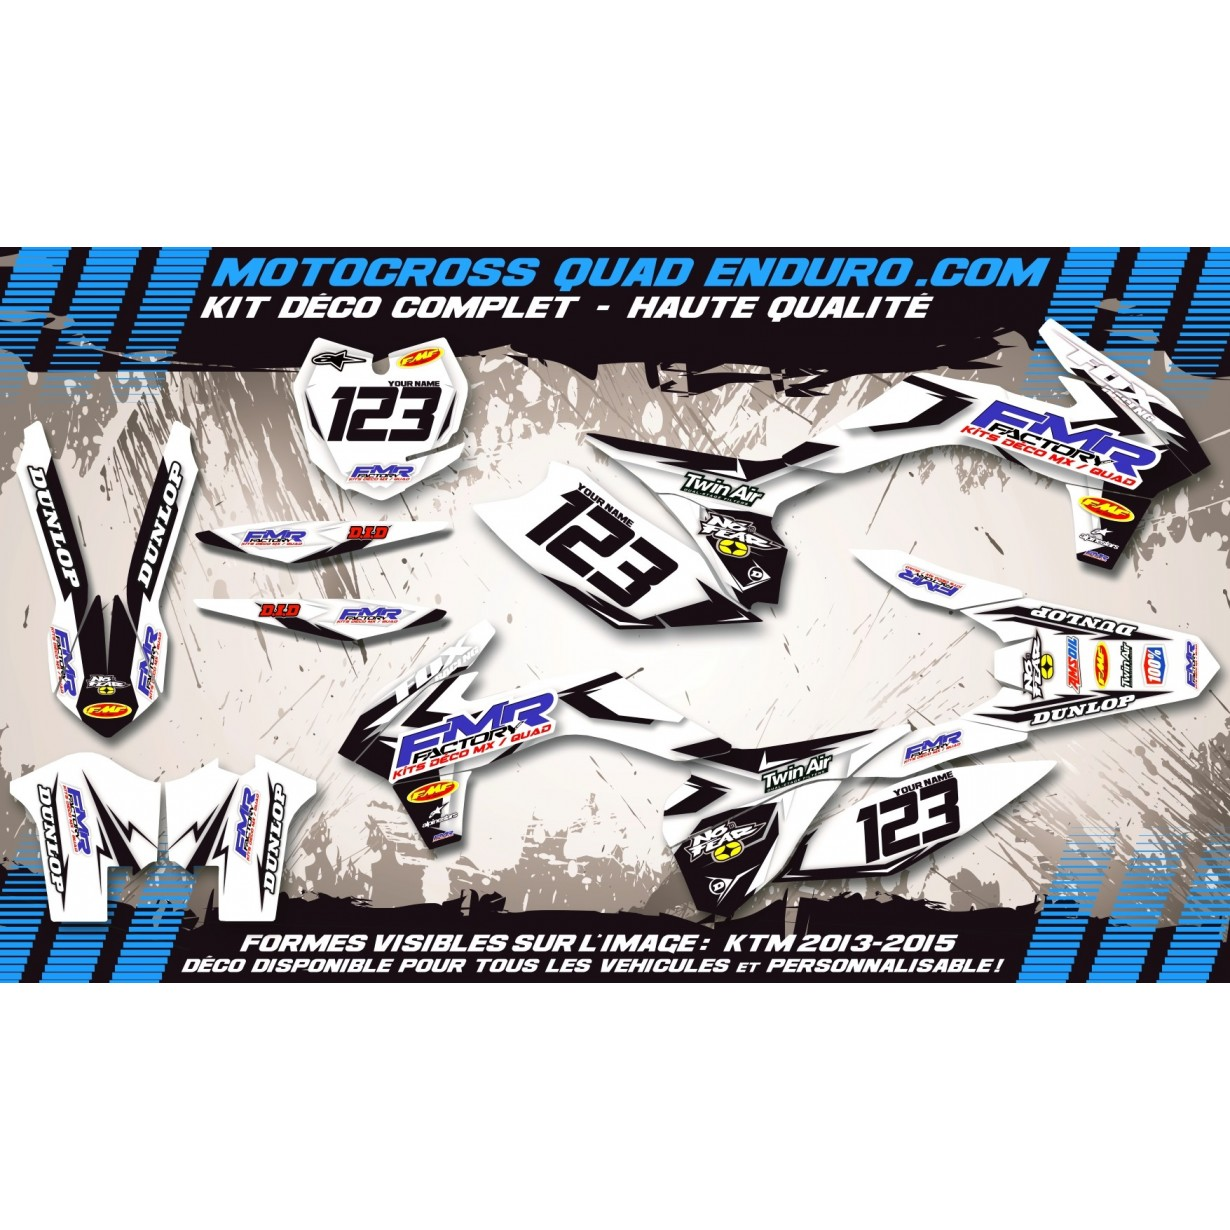 KIT DÉCO Perso TC 250 08-13 Fmr factory WT Edition MA13WT